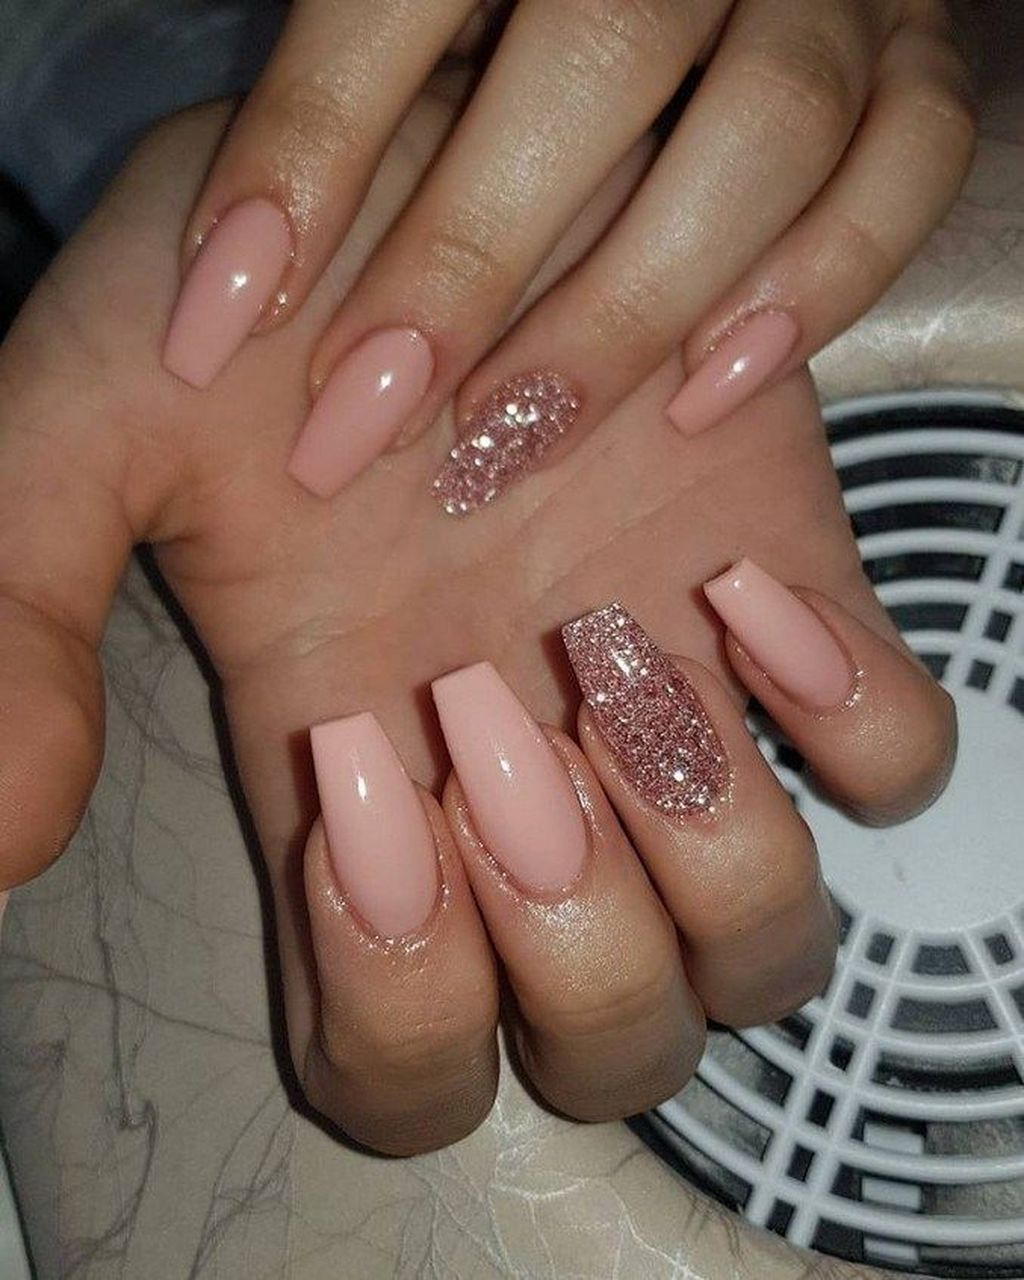 40 Perfect Acrylic Nail Designs Ideas For New Year 2020 In 2020 Pretty Acrylic Nails Cute Acrylic Nail Designs Fashion Nails